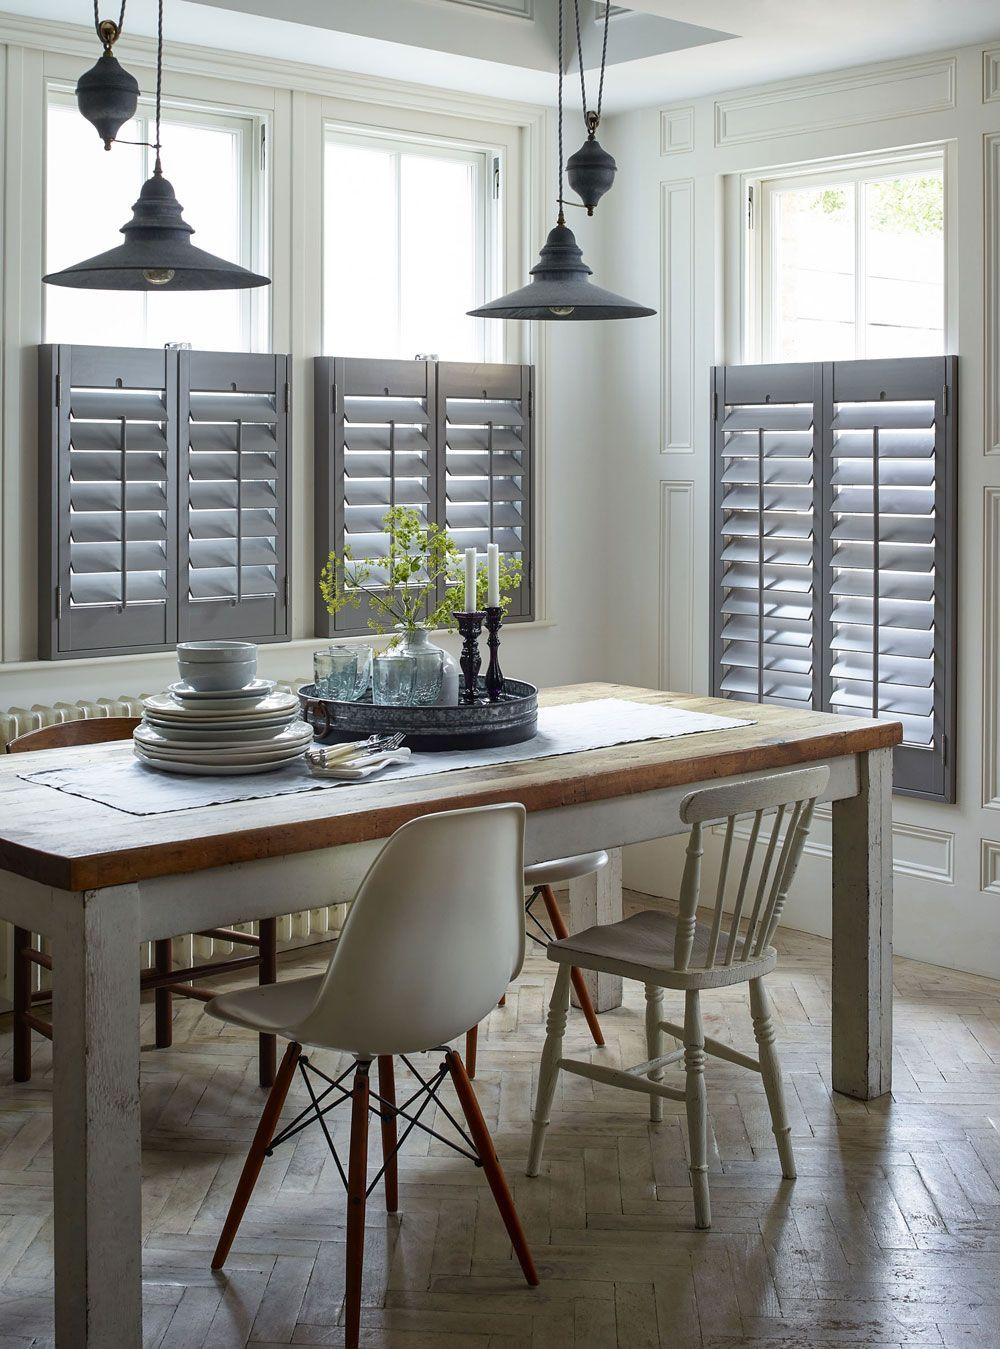 Creating a statement with café style shutters in your home